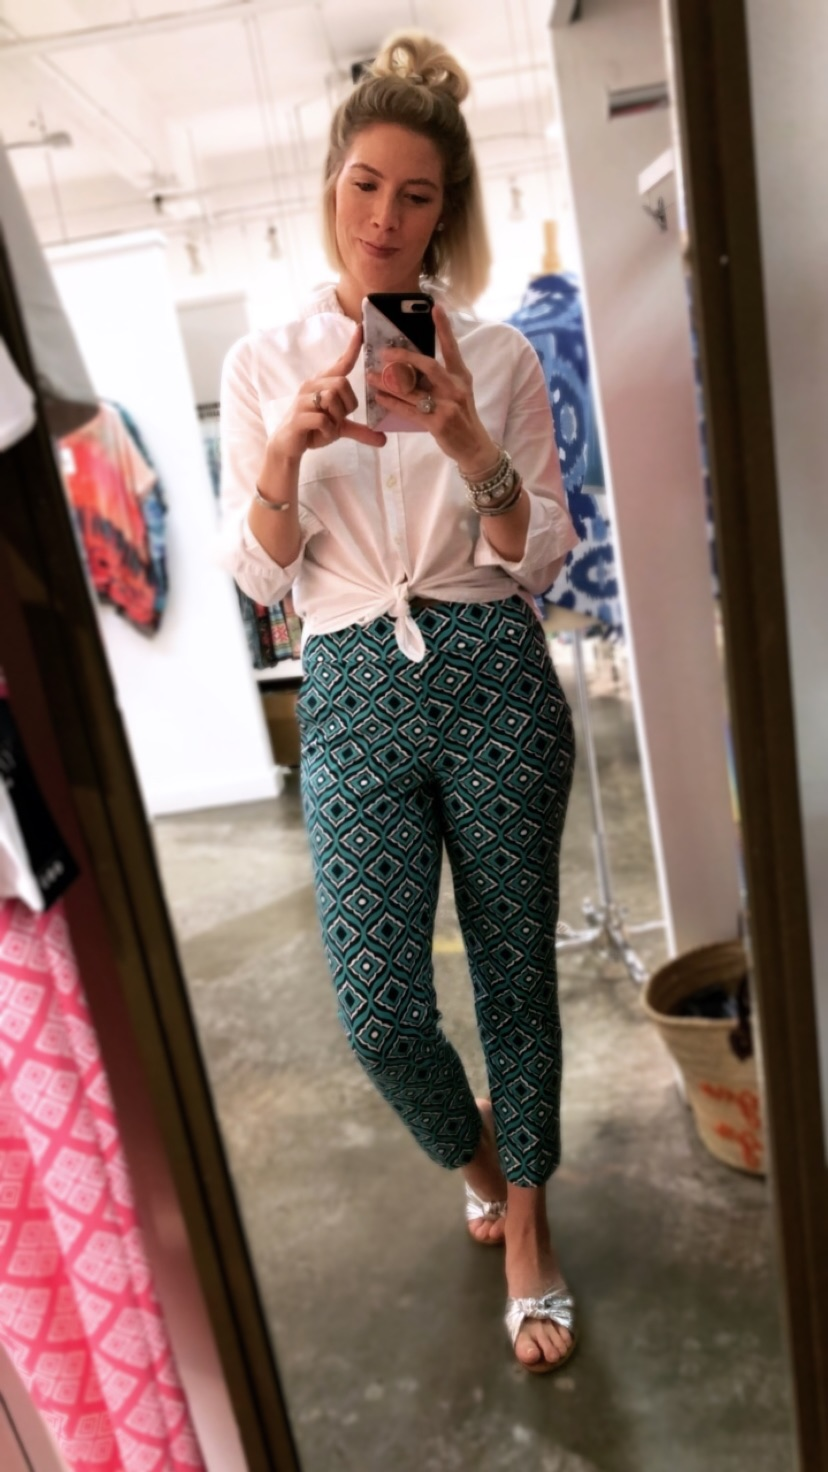 Panama Pant in Trevino Aqua Navy from The Katherine Way Resort 2018 October Collection worn by Fashion Blogger Stephanie Mack of The Borrowed Babes Fashion Blog